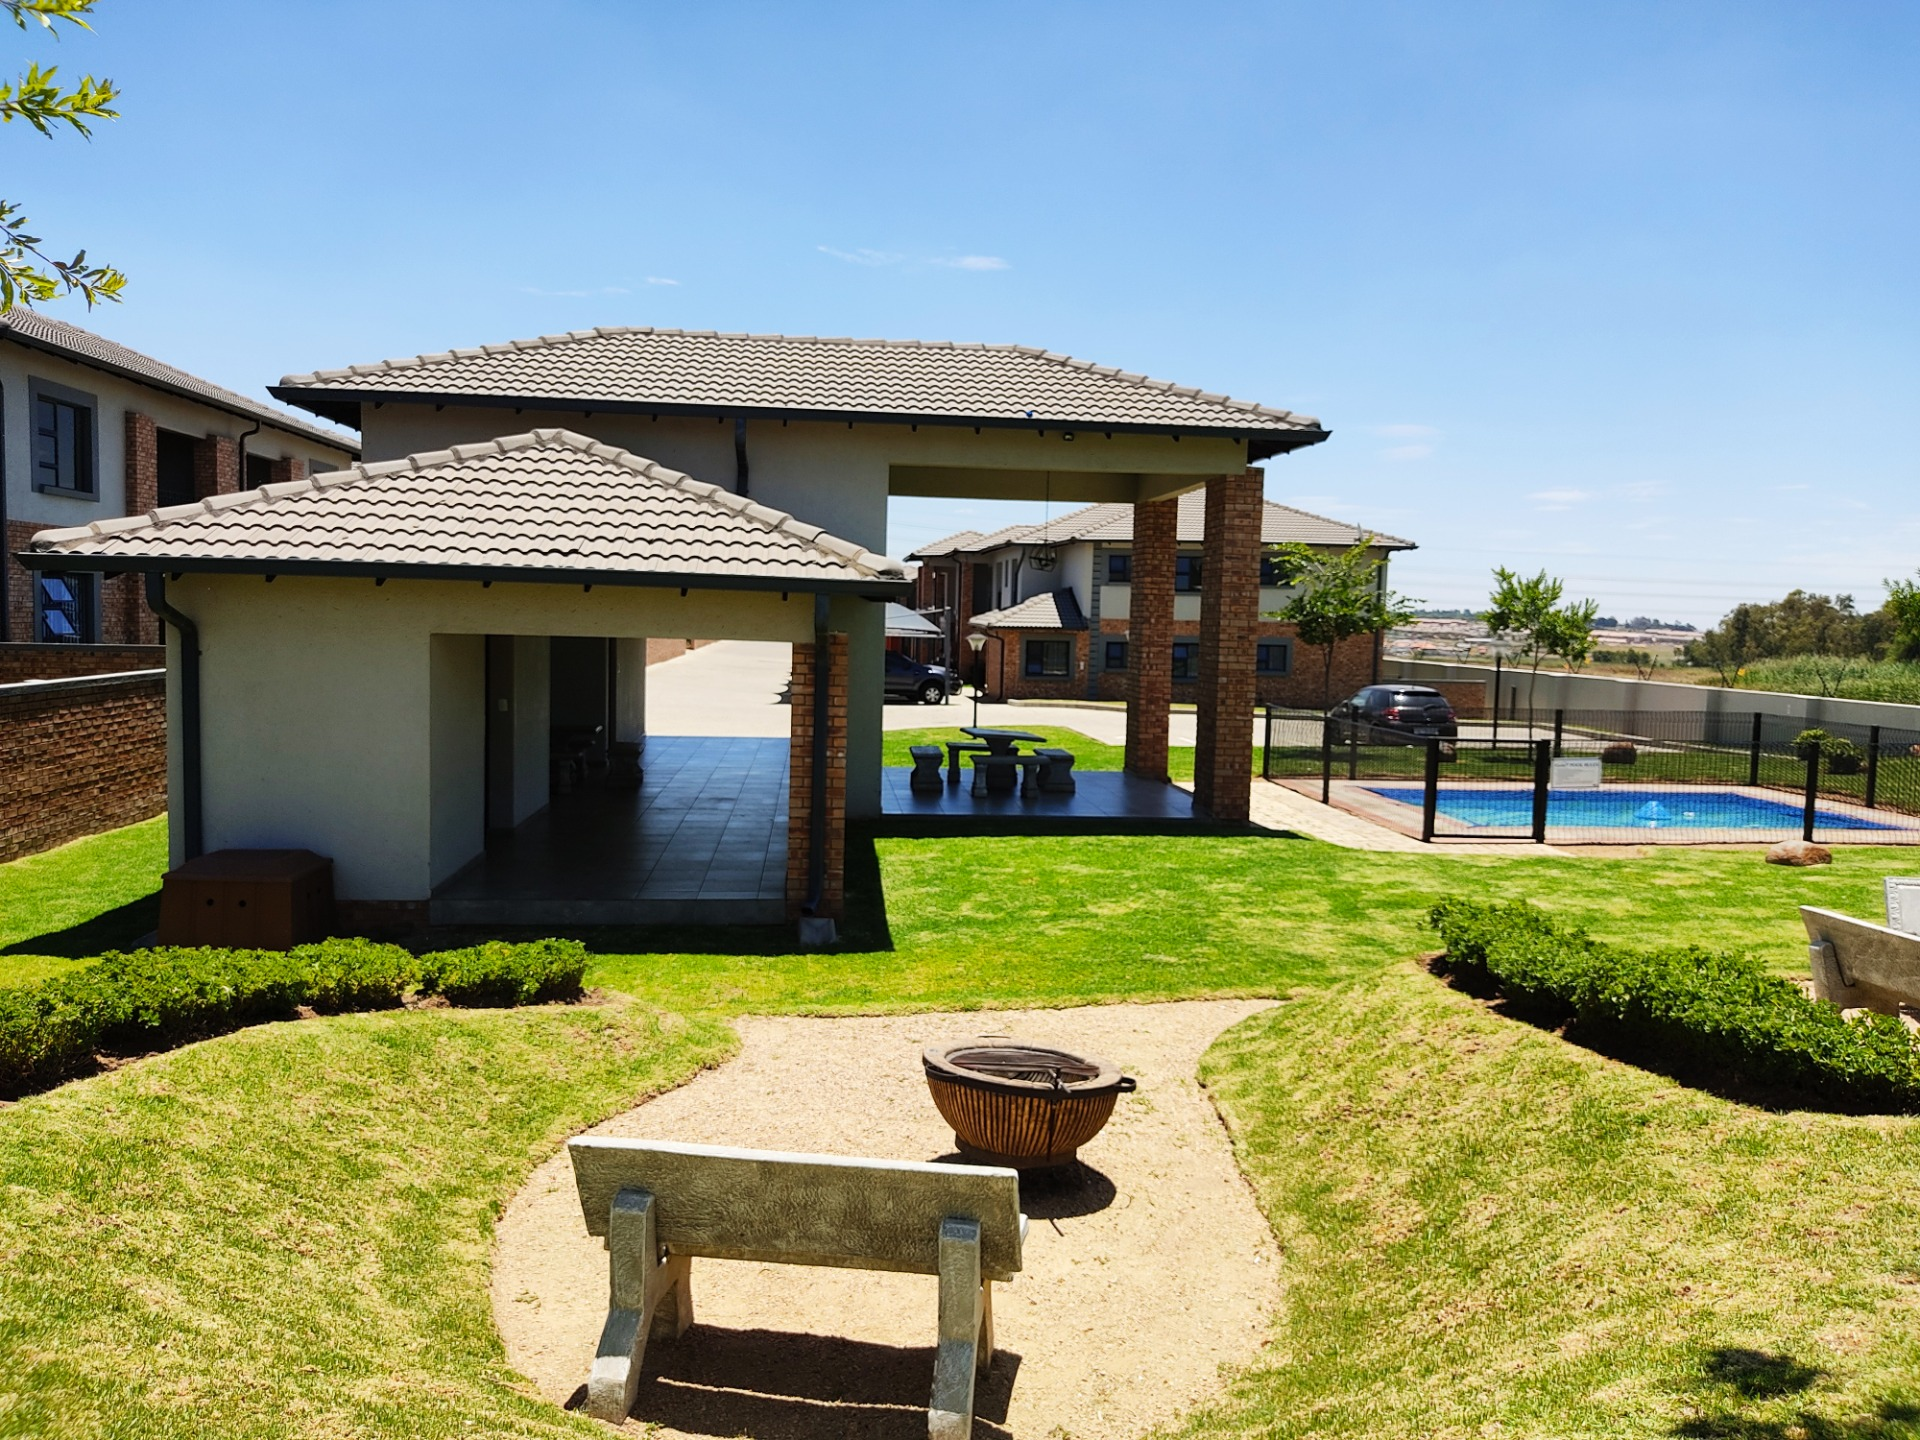 3 Bedroom Modern Apartment  In Midrand